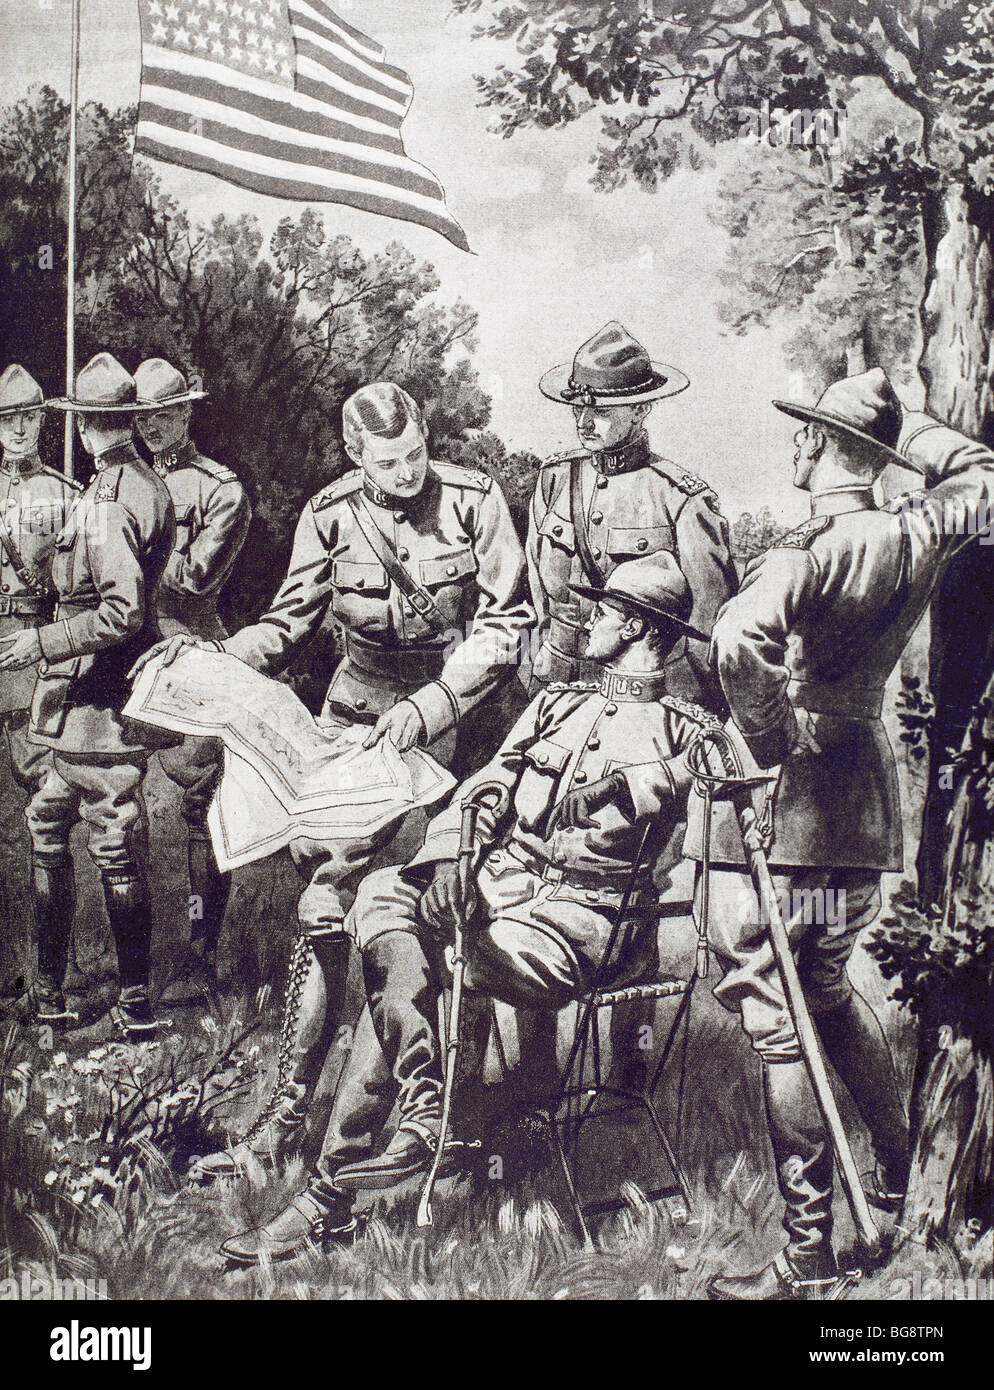 WORLD WAR I (1914-1918). On April 5 of 1917 the USA declares war on the central empires. American military officers - Stock Image